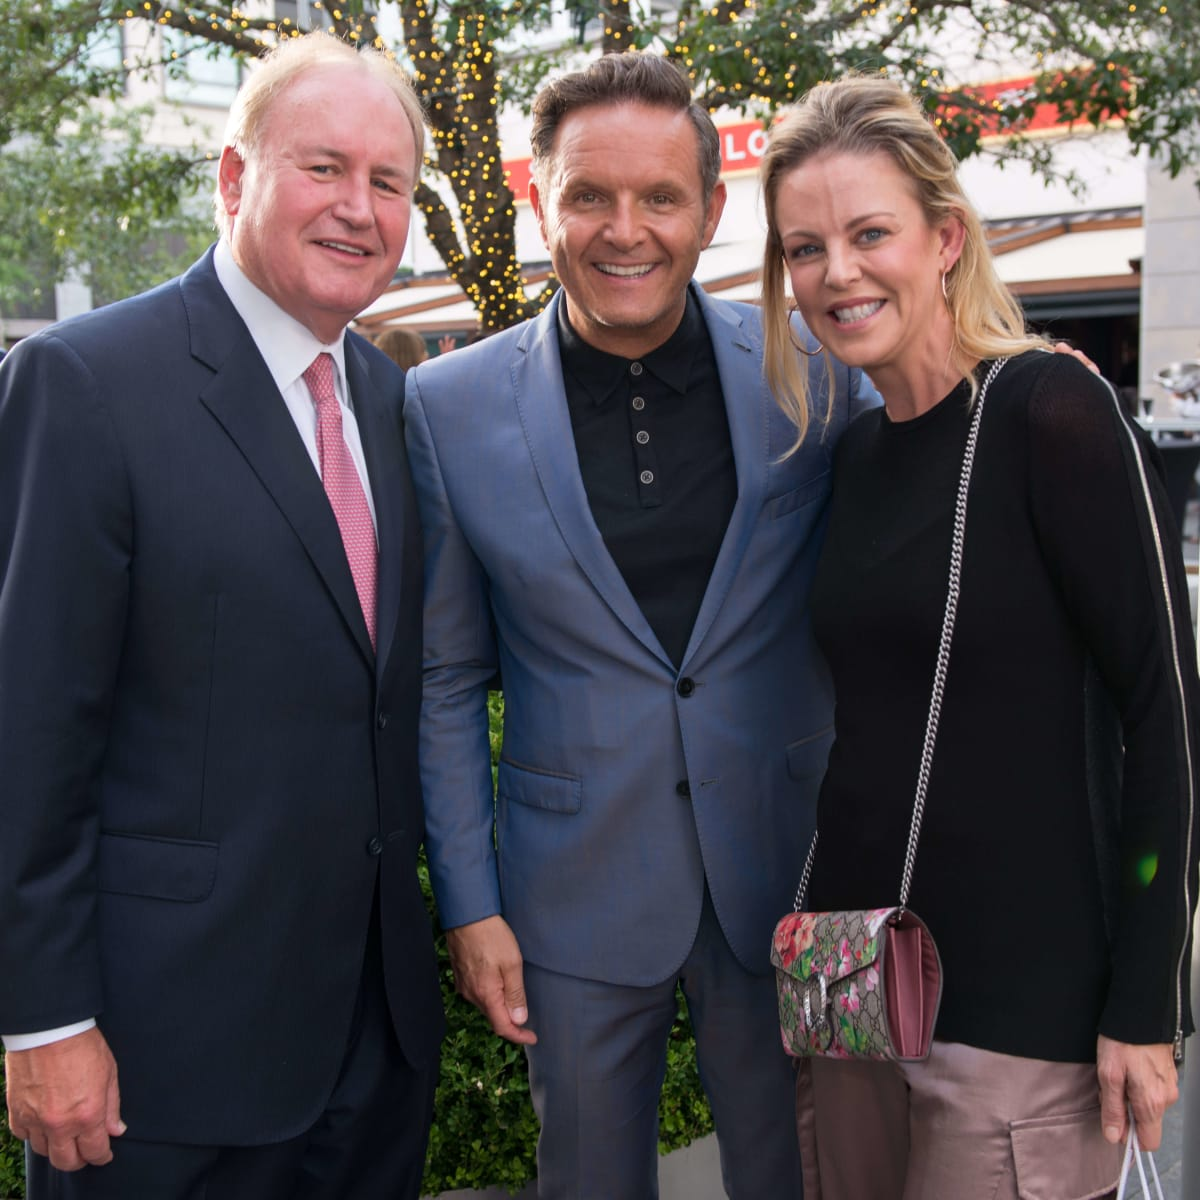 Ben-Hur premiere, Aug. 2016, Elizabeth Petersen, Mark Burnett, Gary Petersen